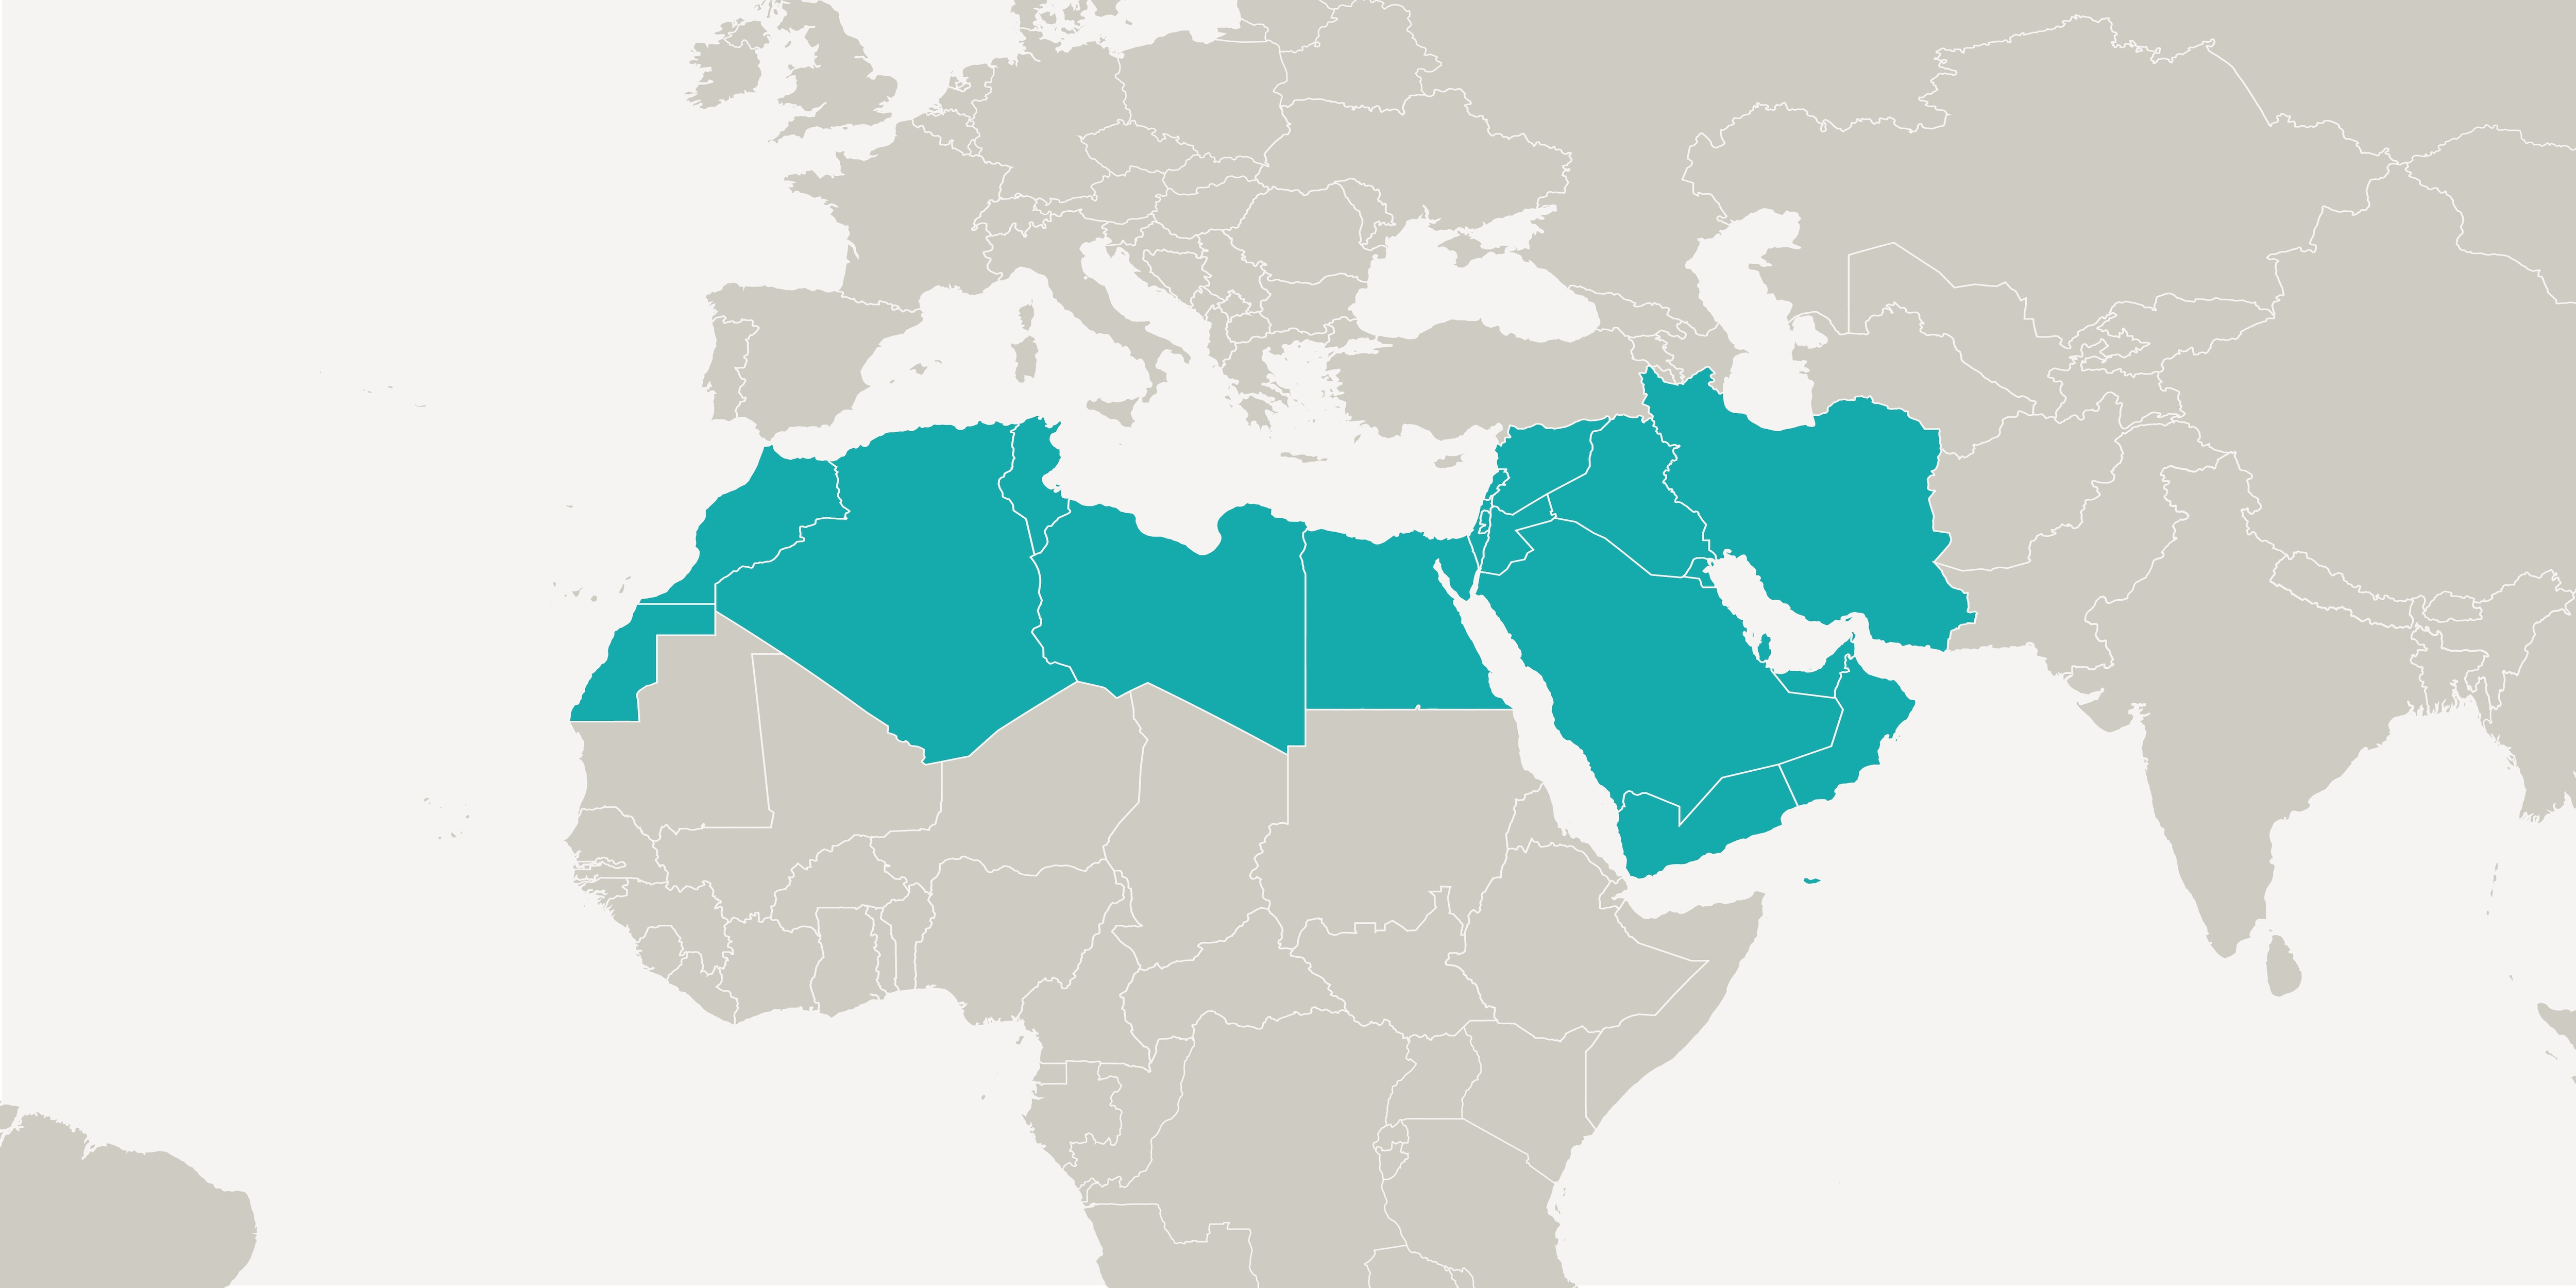 A graphic shows a section of a world map. The 18 countries of the MENA (Middle East and North Africa) region are highlighted in colour.